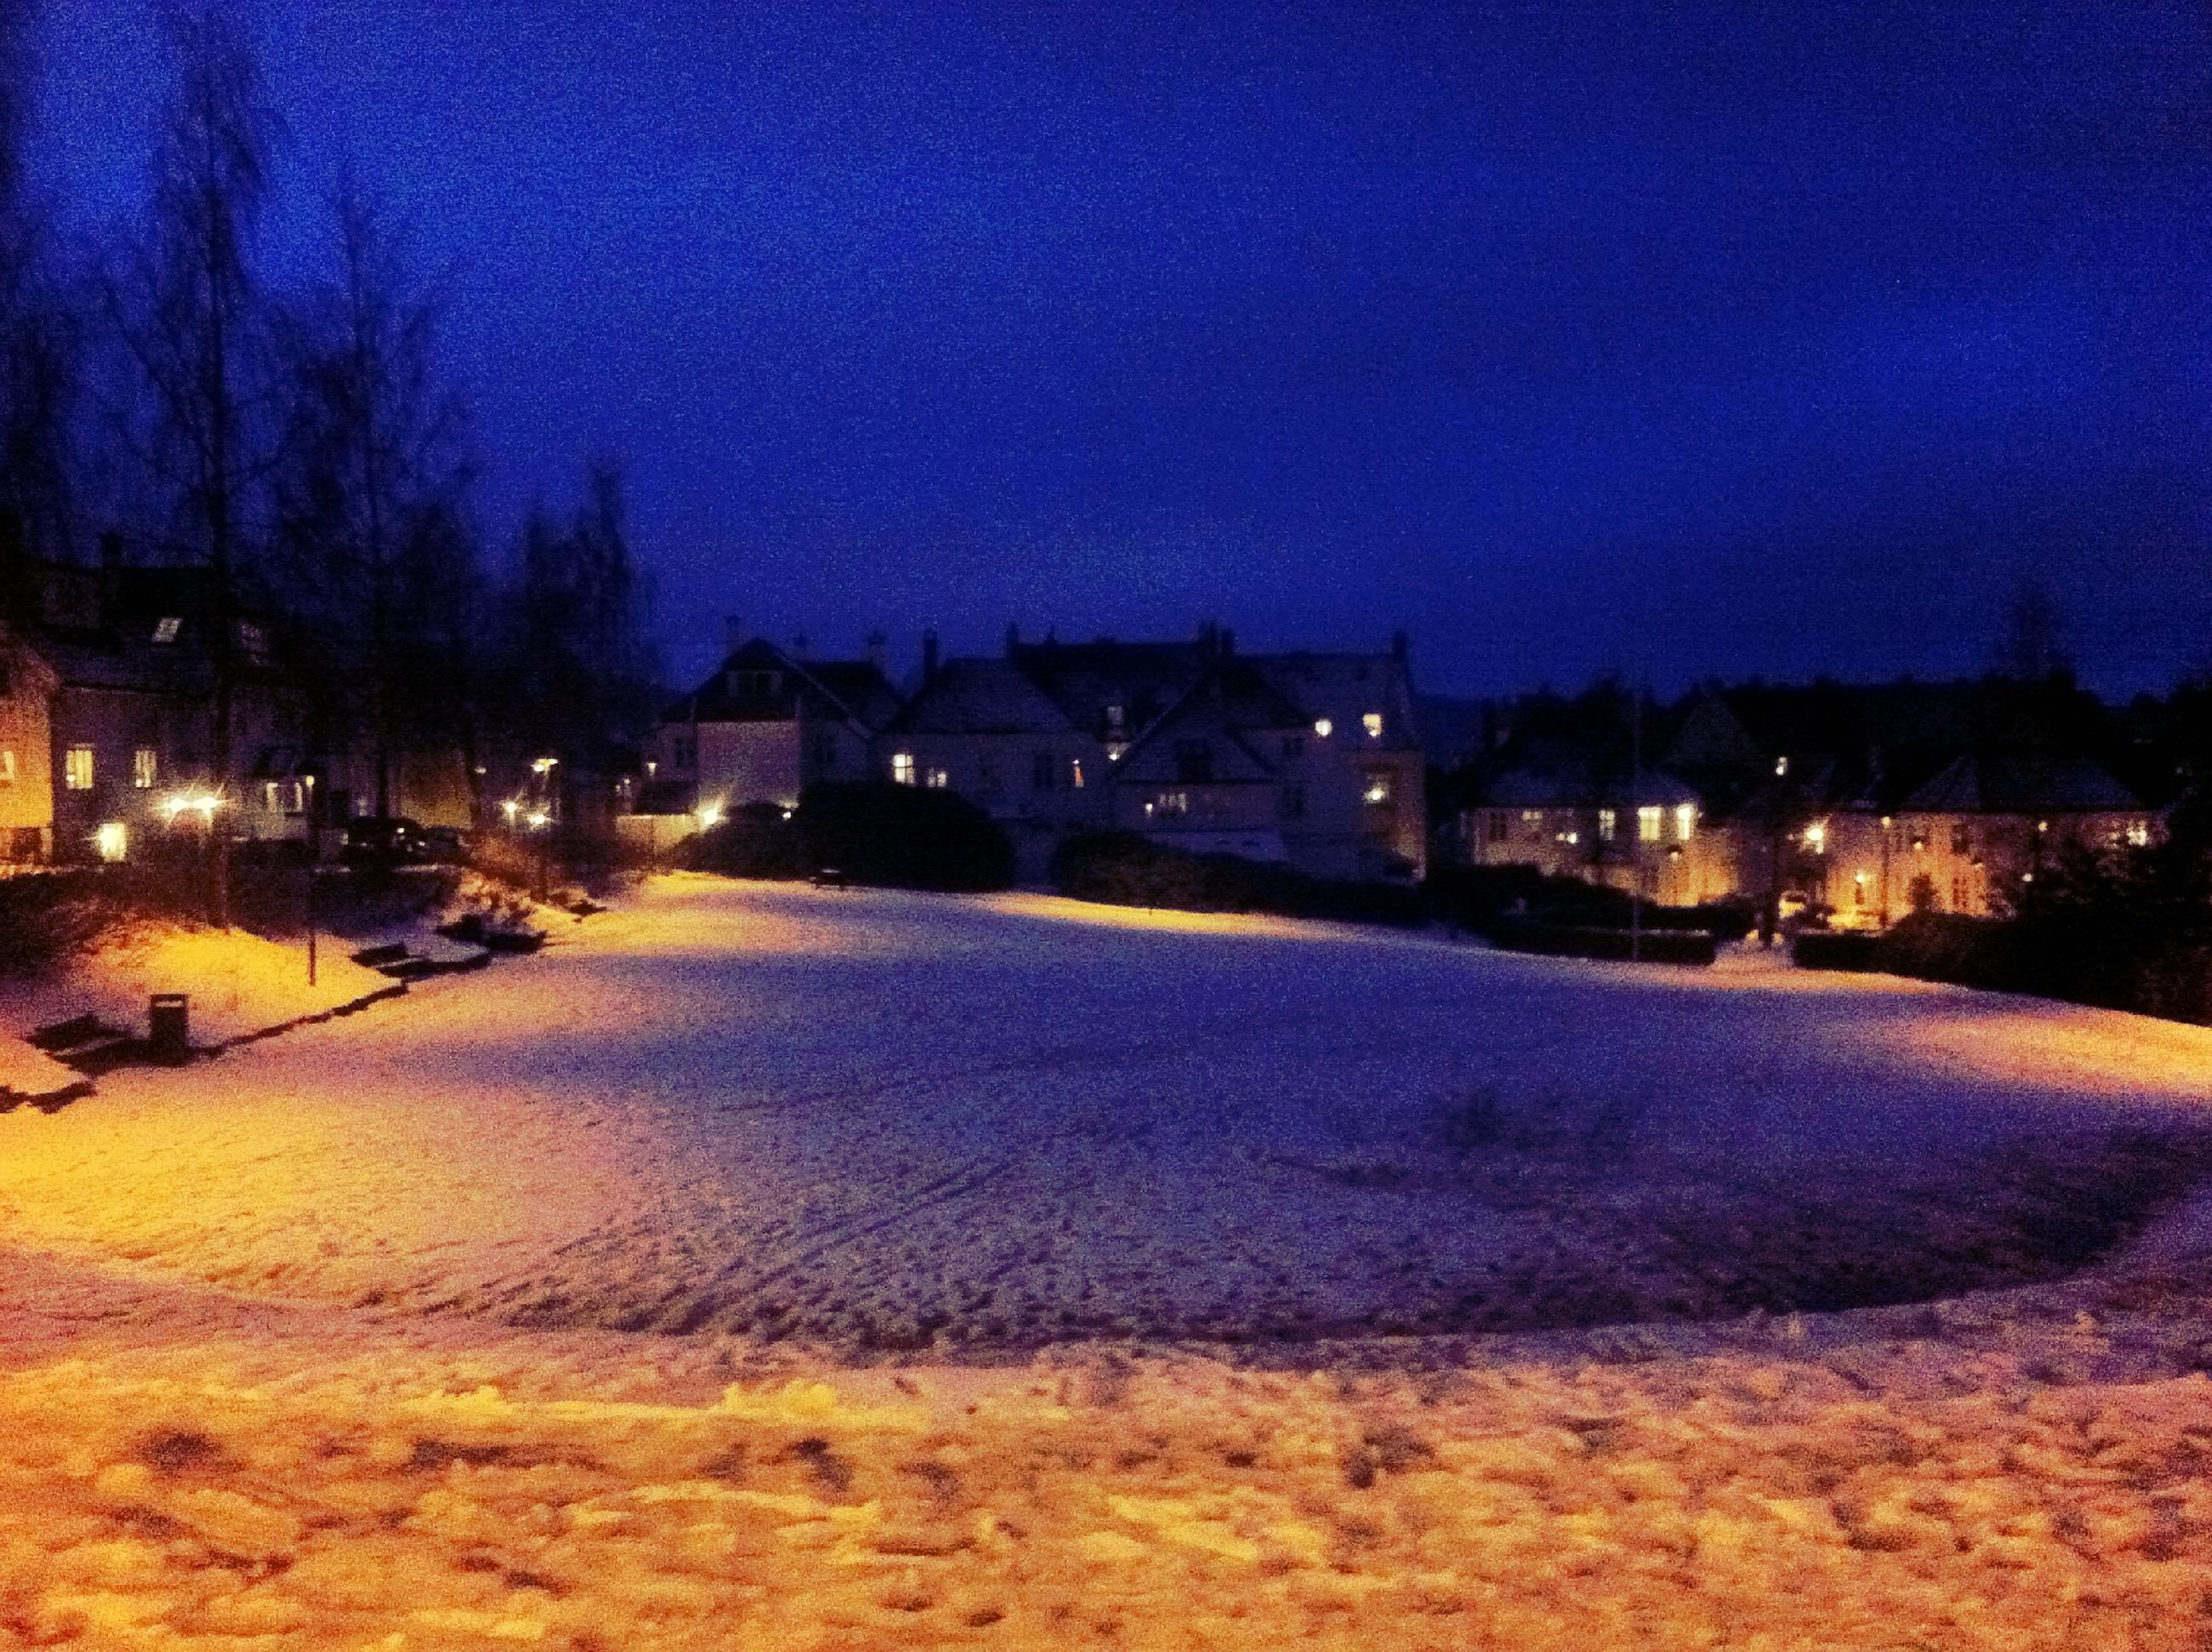 night, illuminated, blue, landscape, sky, snow, tranquility, tranquil scene, winter, scenics, field, cold temperature, nature, tree, beauty in nature, road, star - space, outdoors, dusk, street light